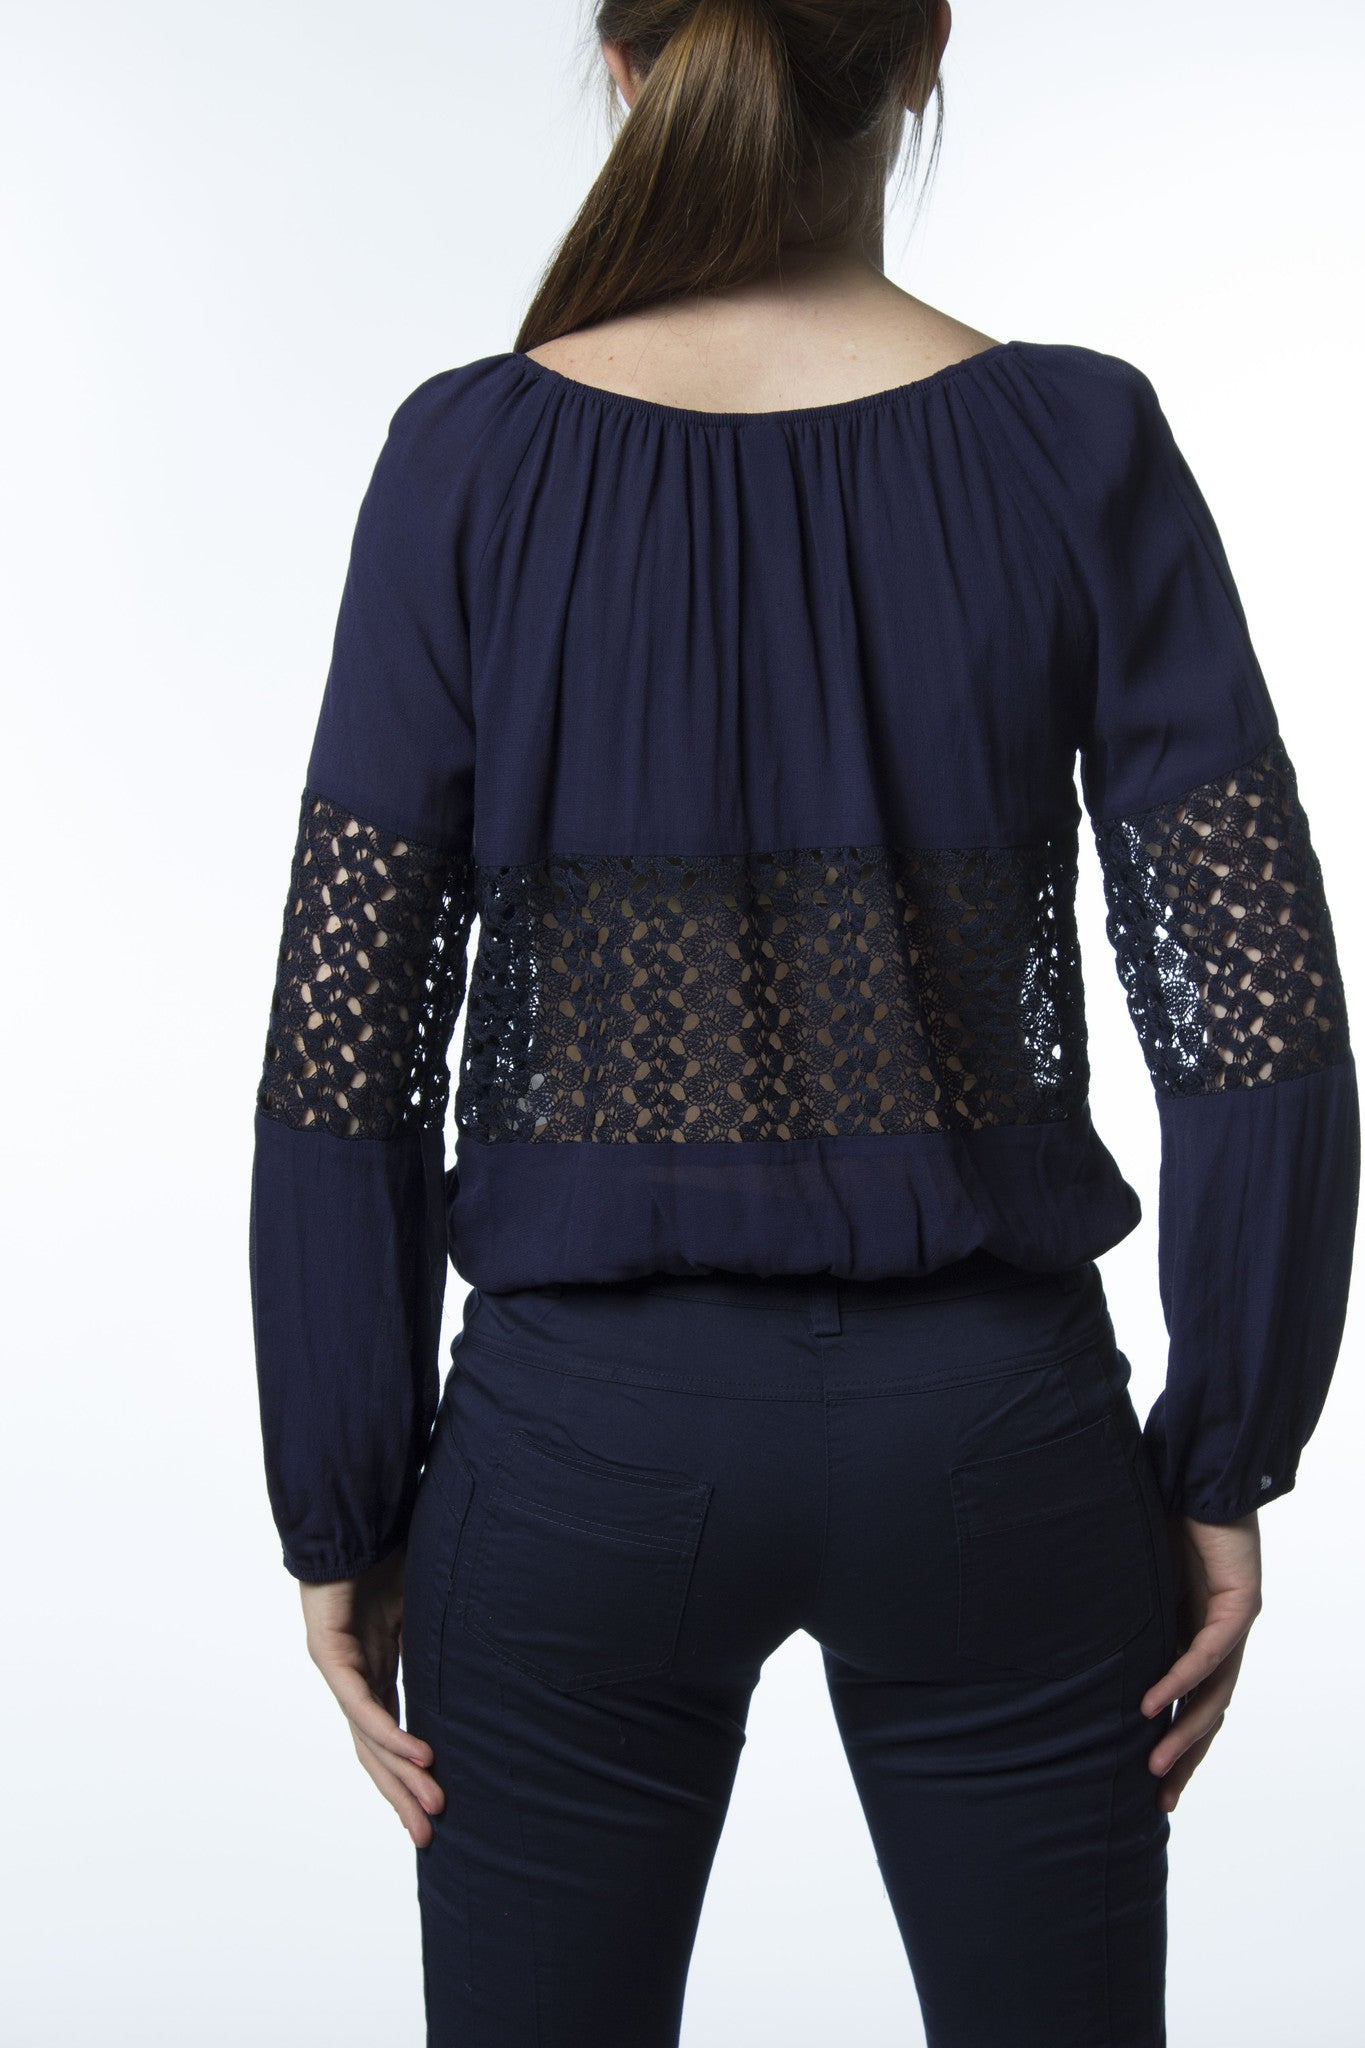 dark blue top with lace sheer panels